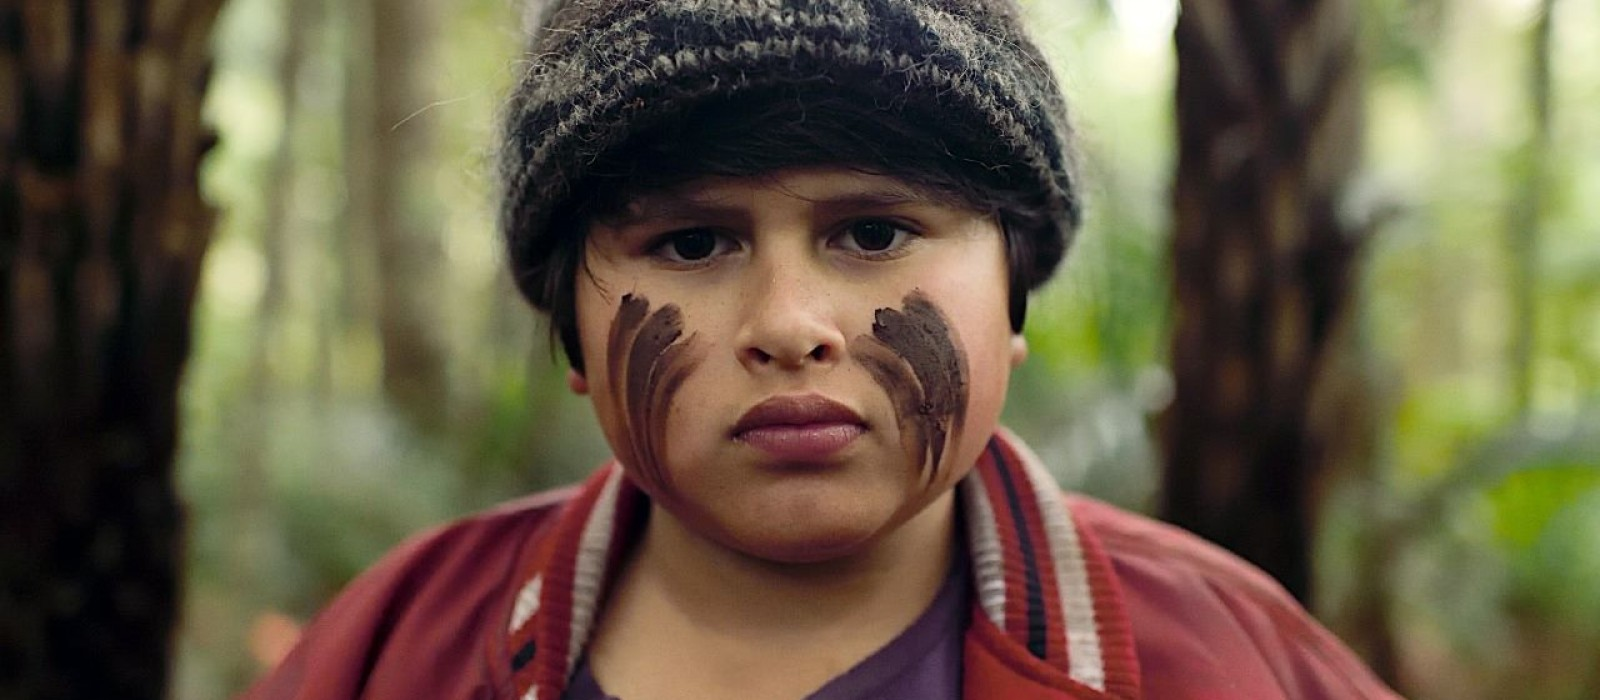 Wilderpeople adventures